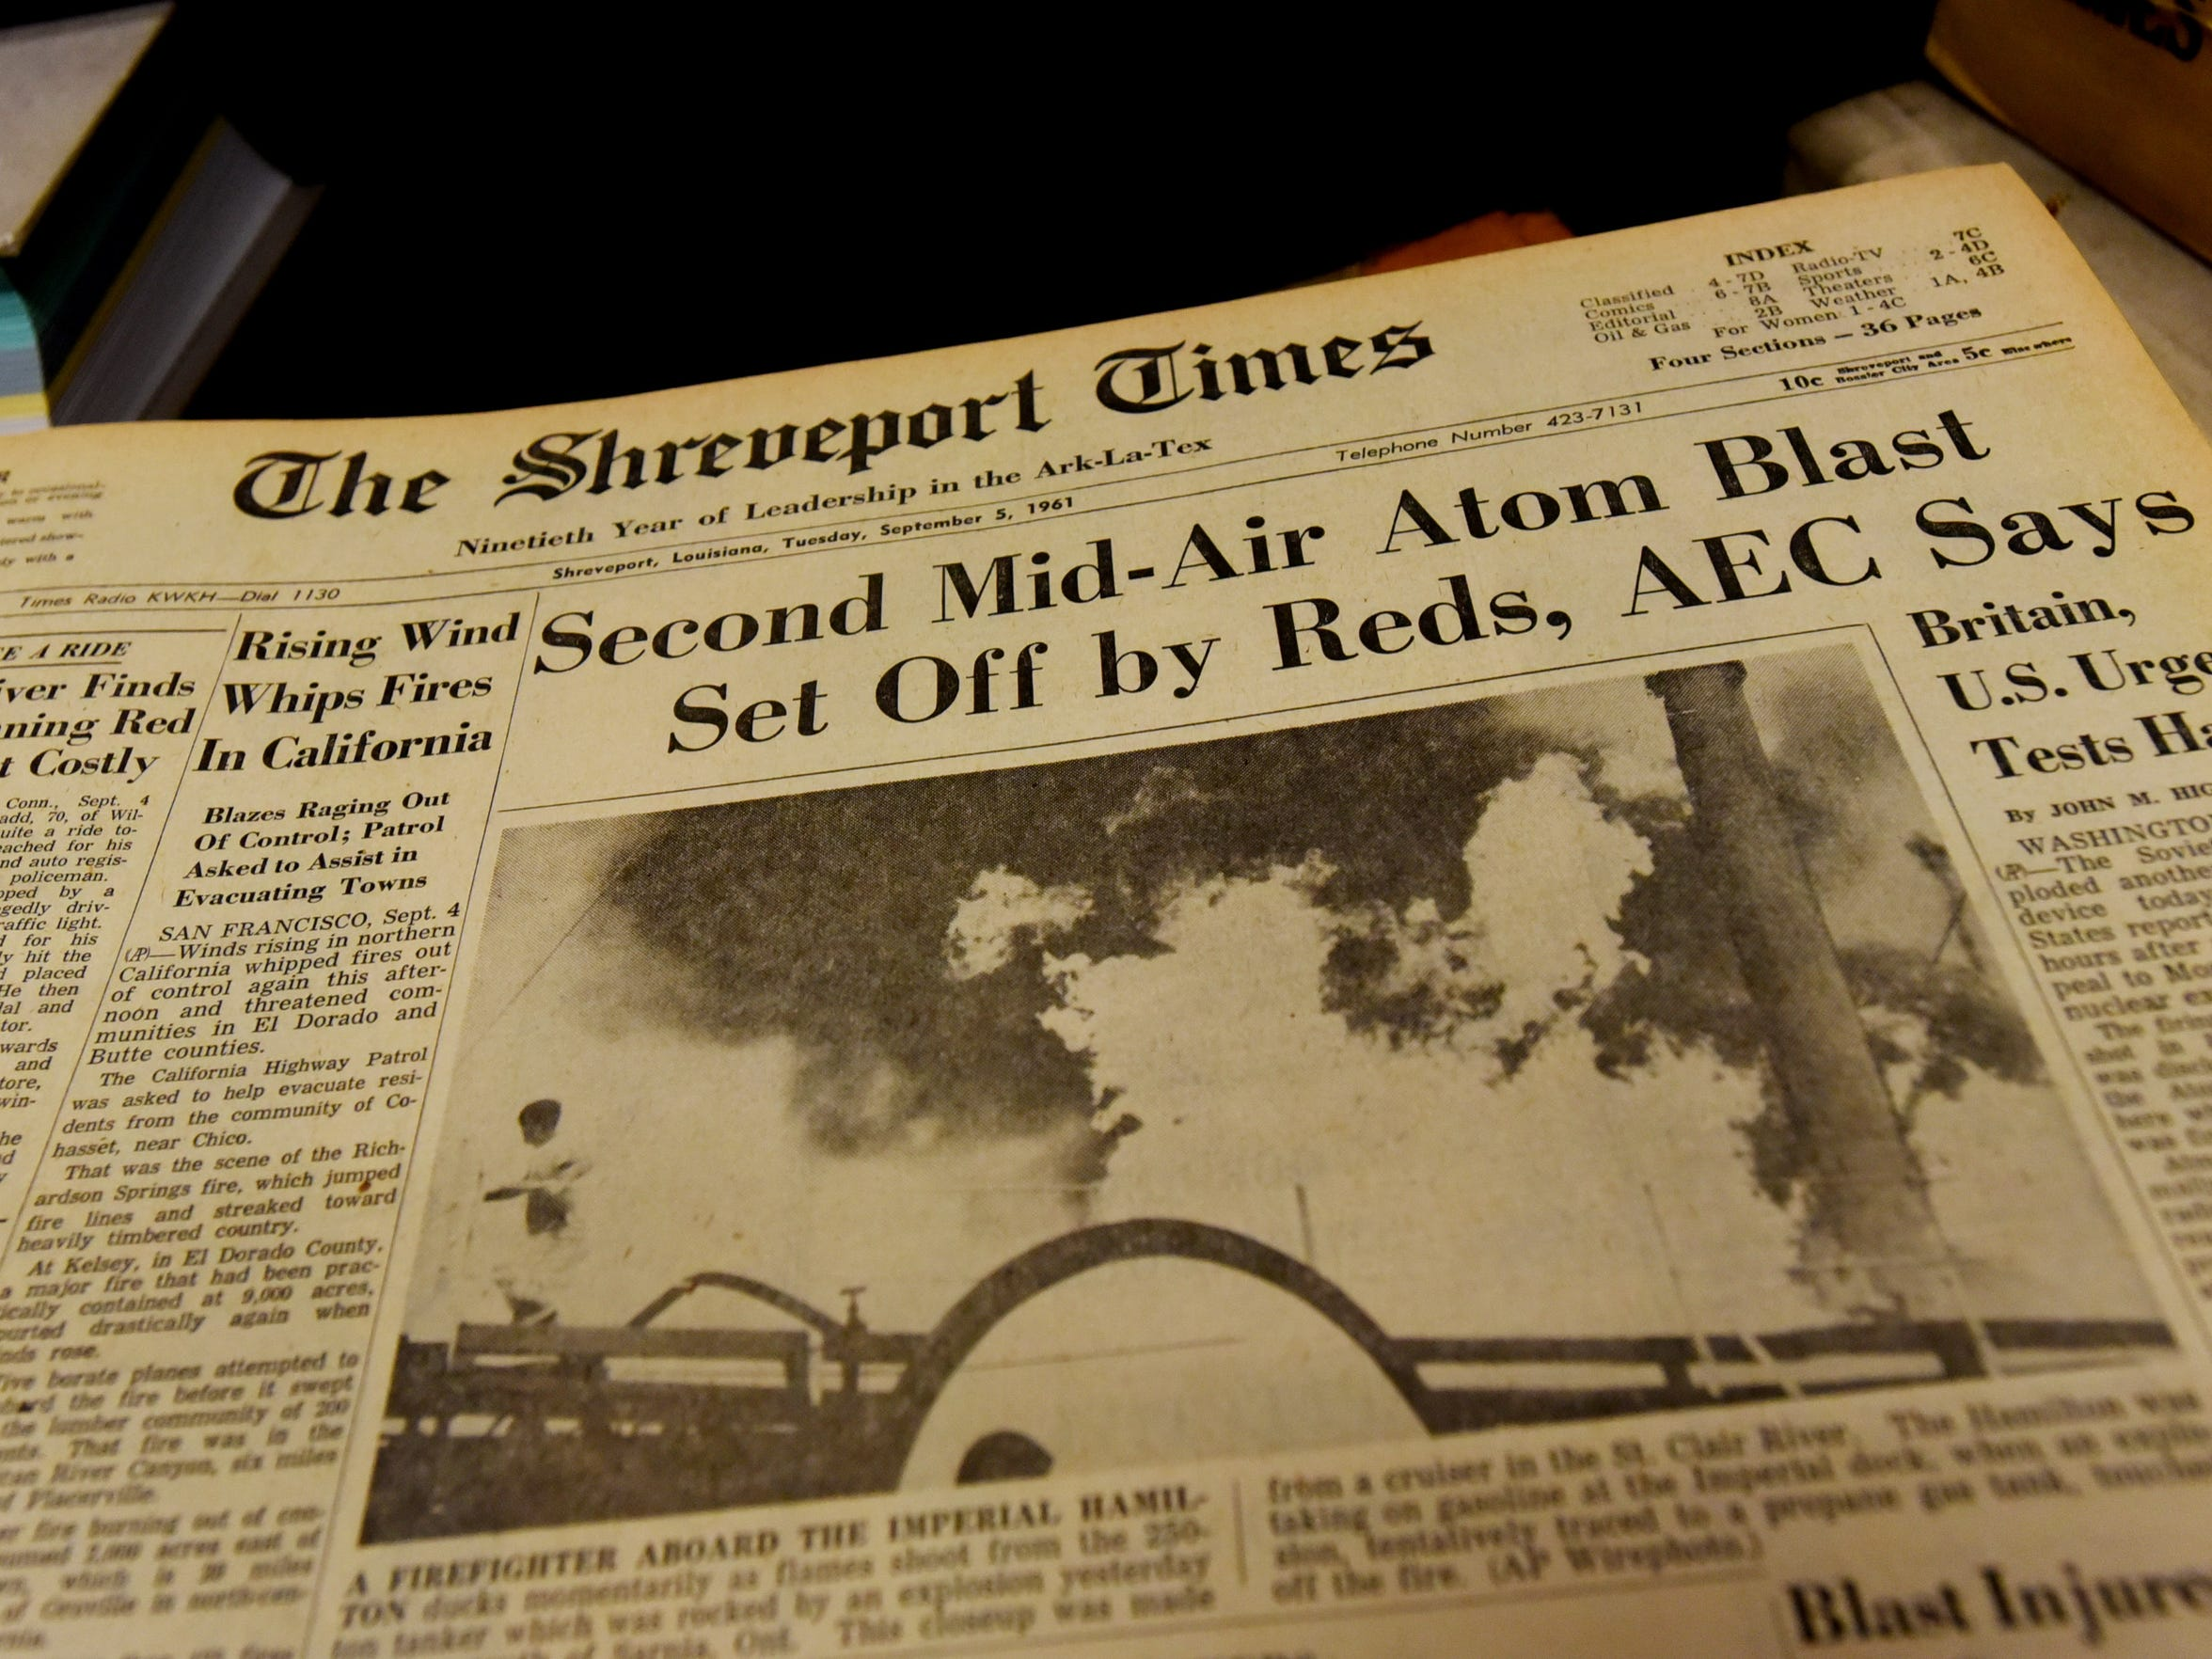 The A-1 story on the September 5, 1961 edition of The Shreveport Times.